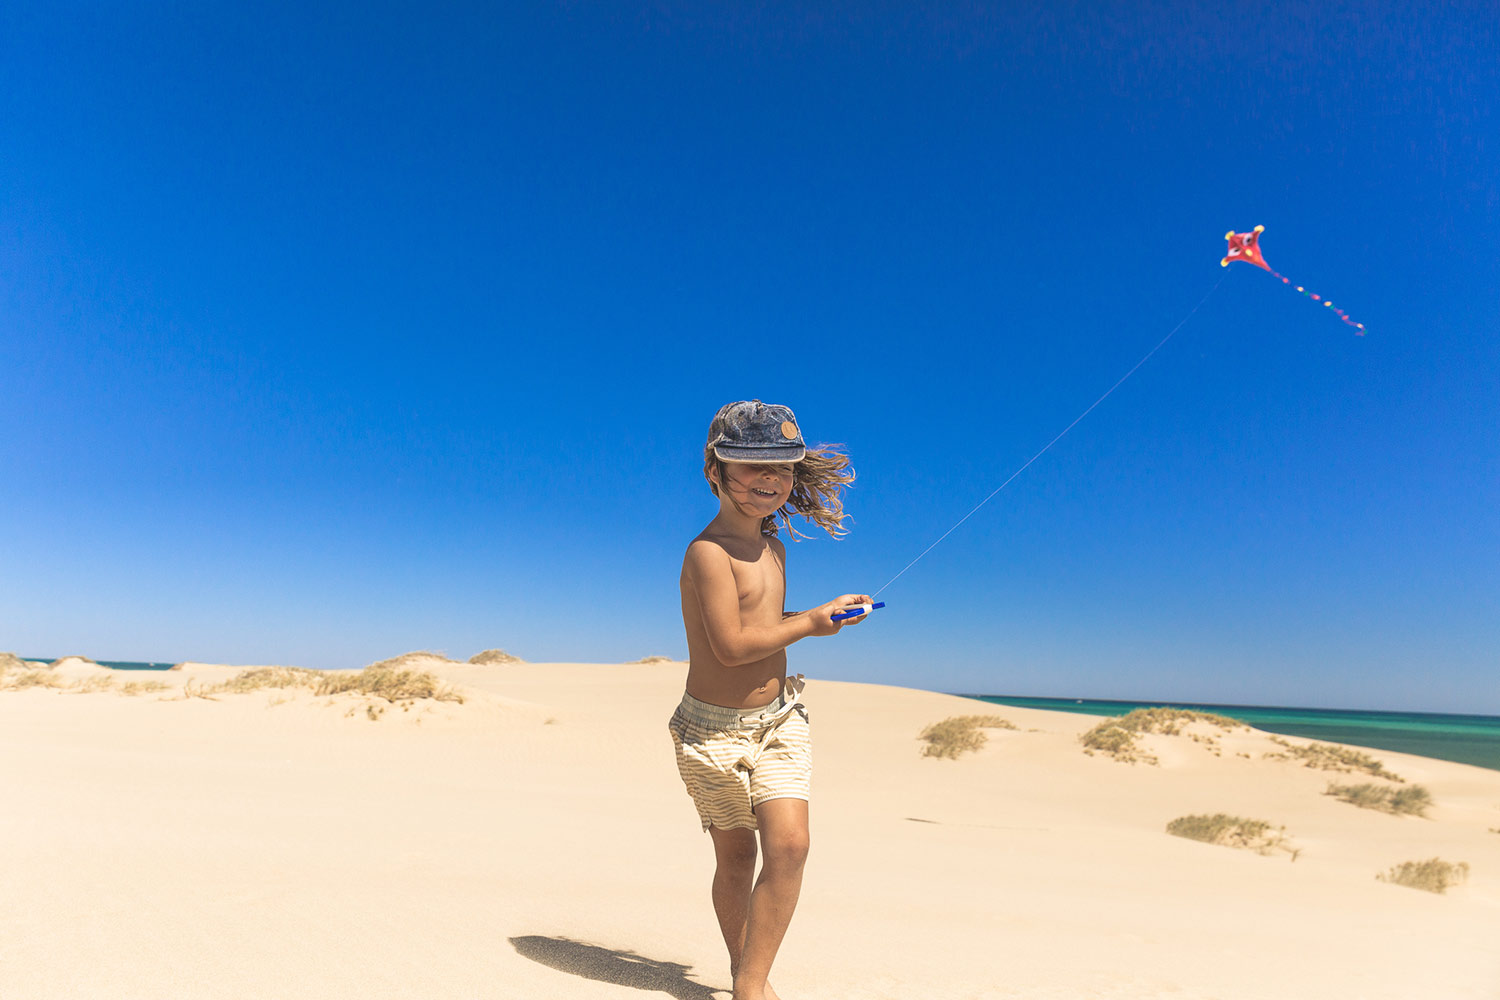 Kite flying at Exmouth in The Cape Range National Park